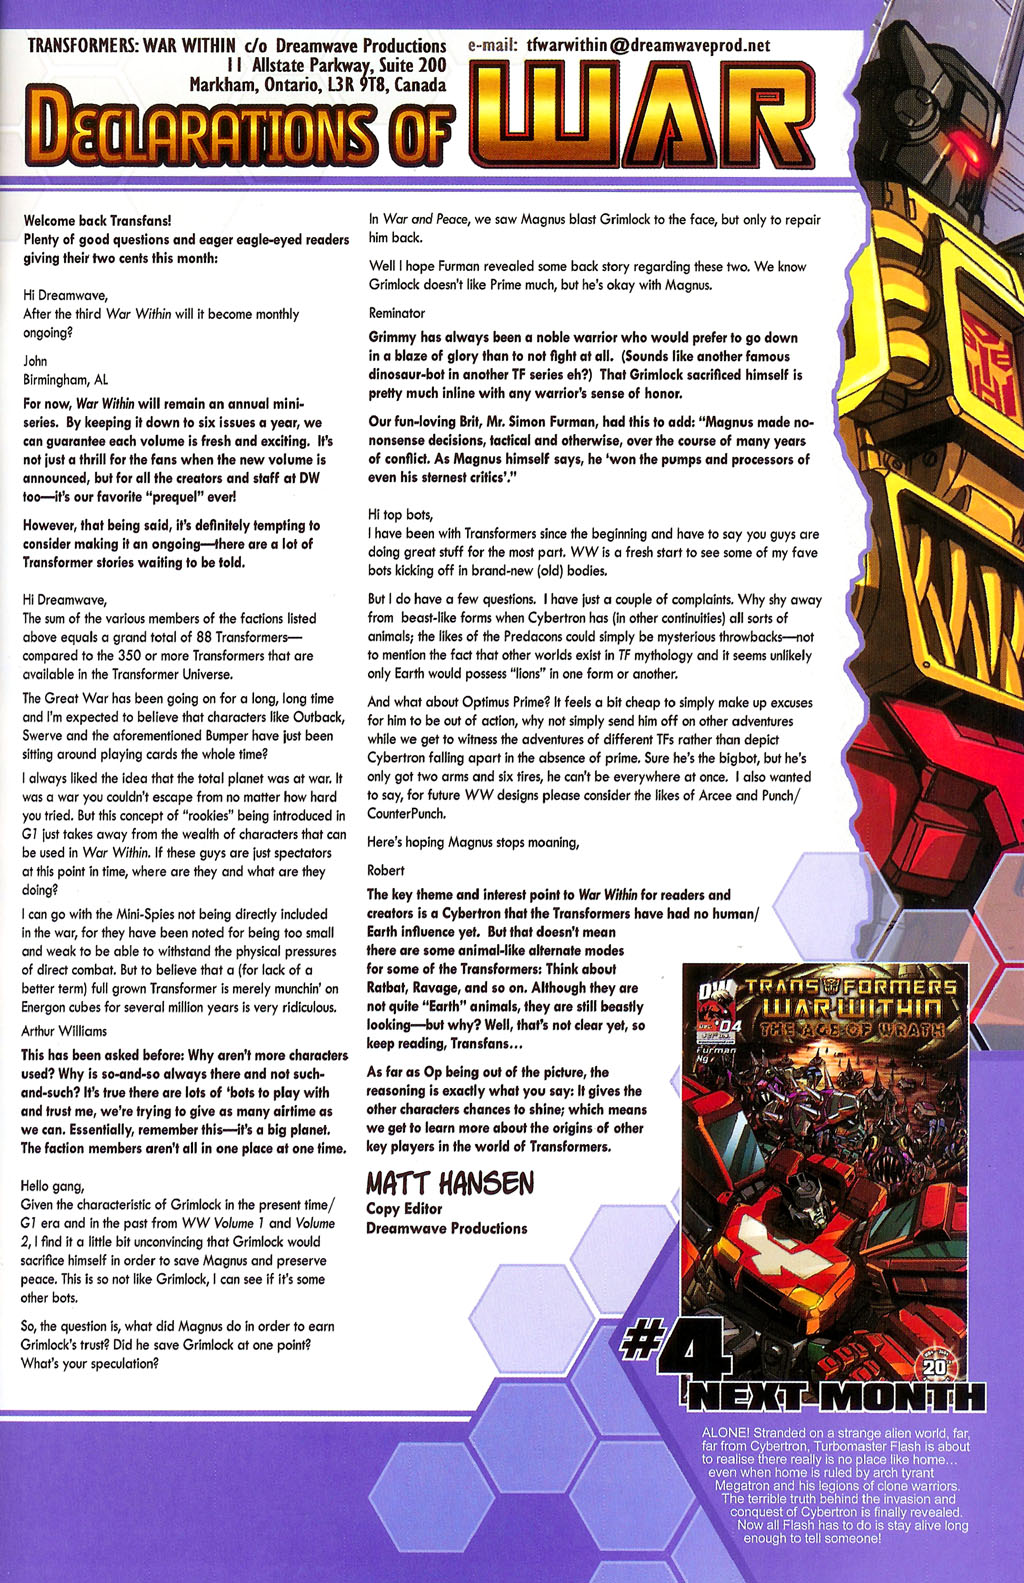 """Read online Transformers War Within: """"The Age of Wrath"""" comic -  Issue #3 - 23"""